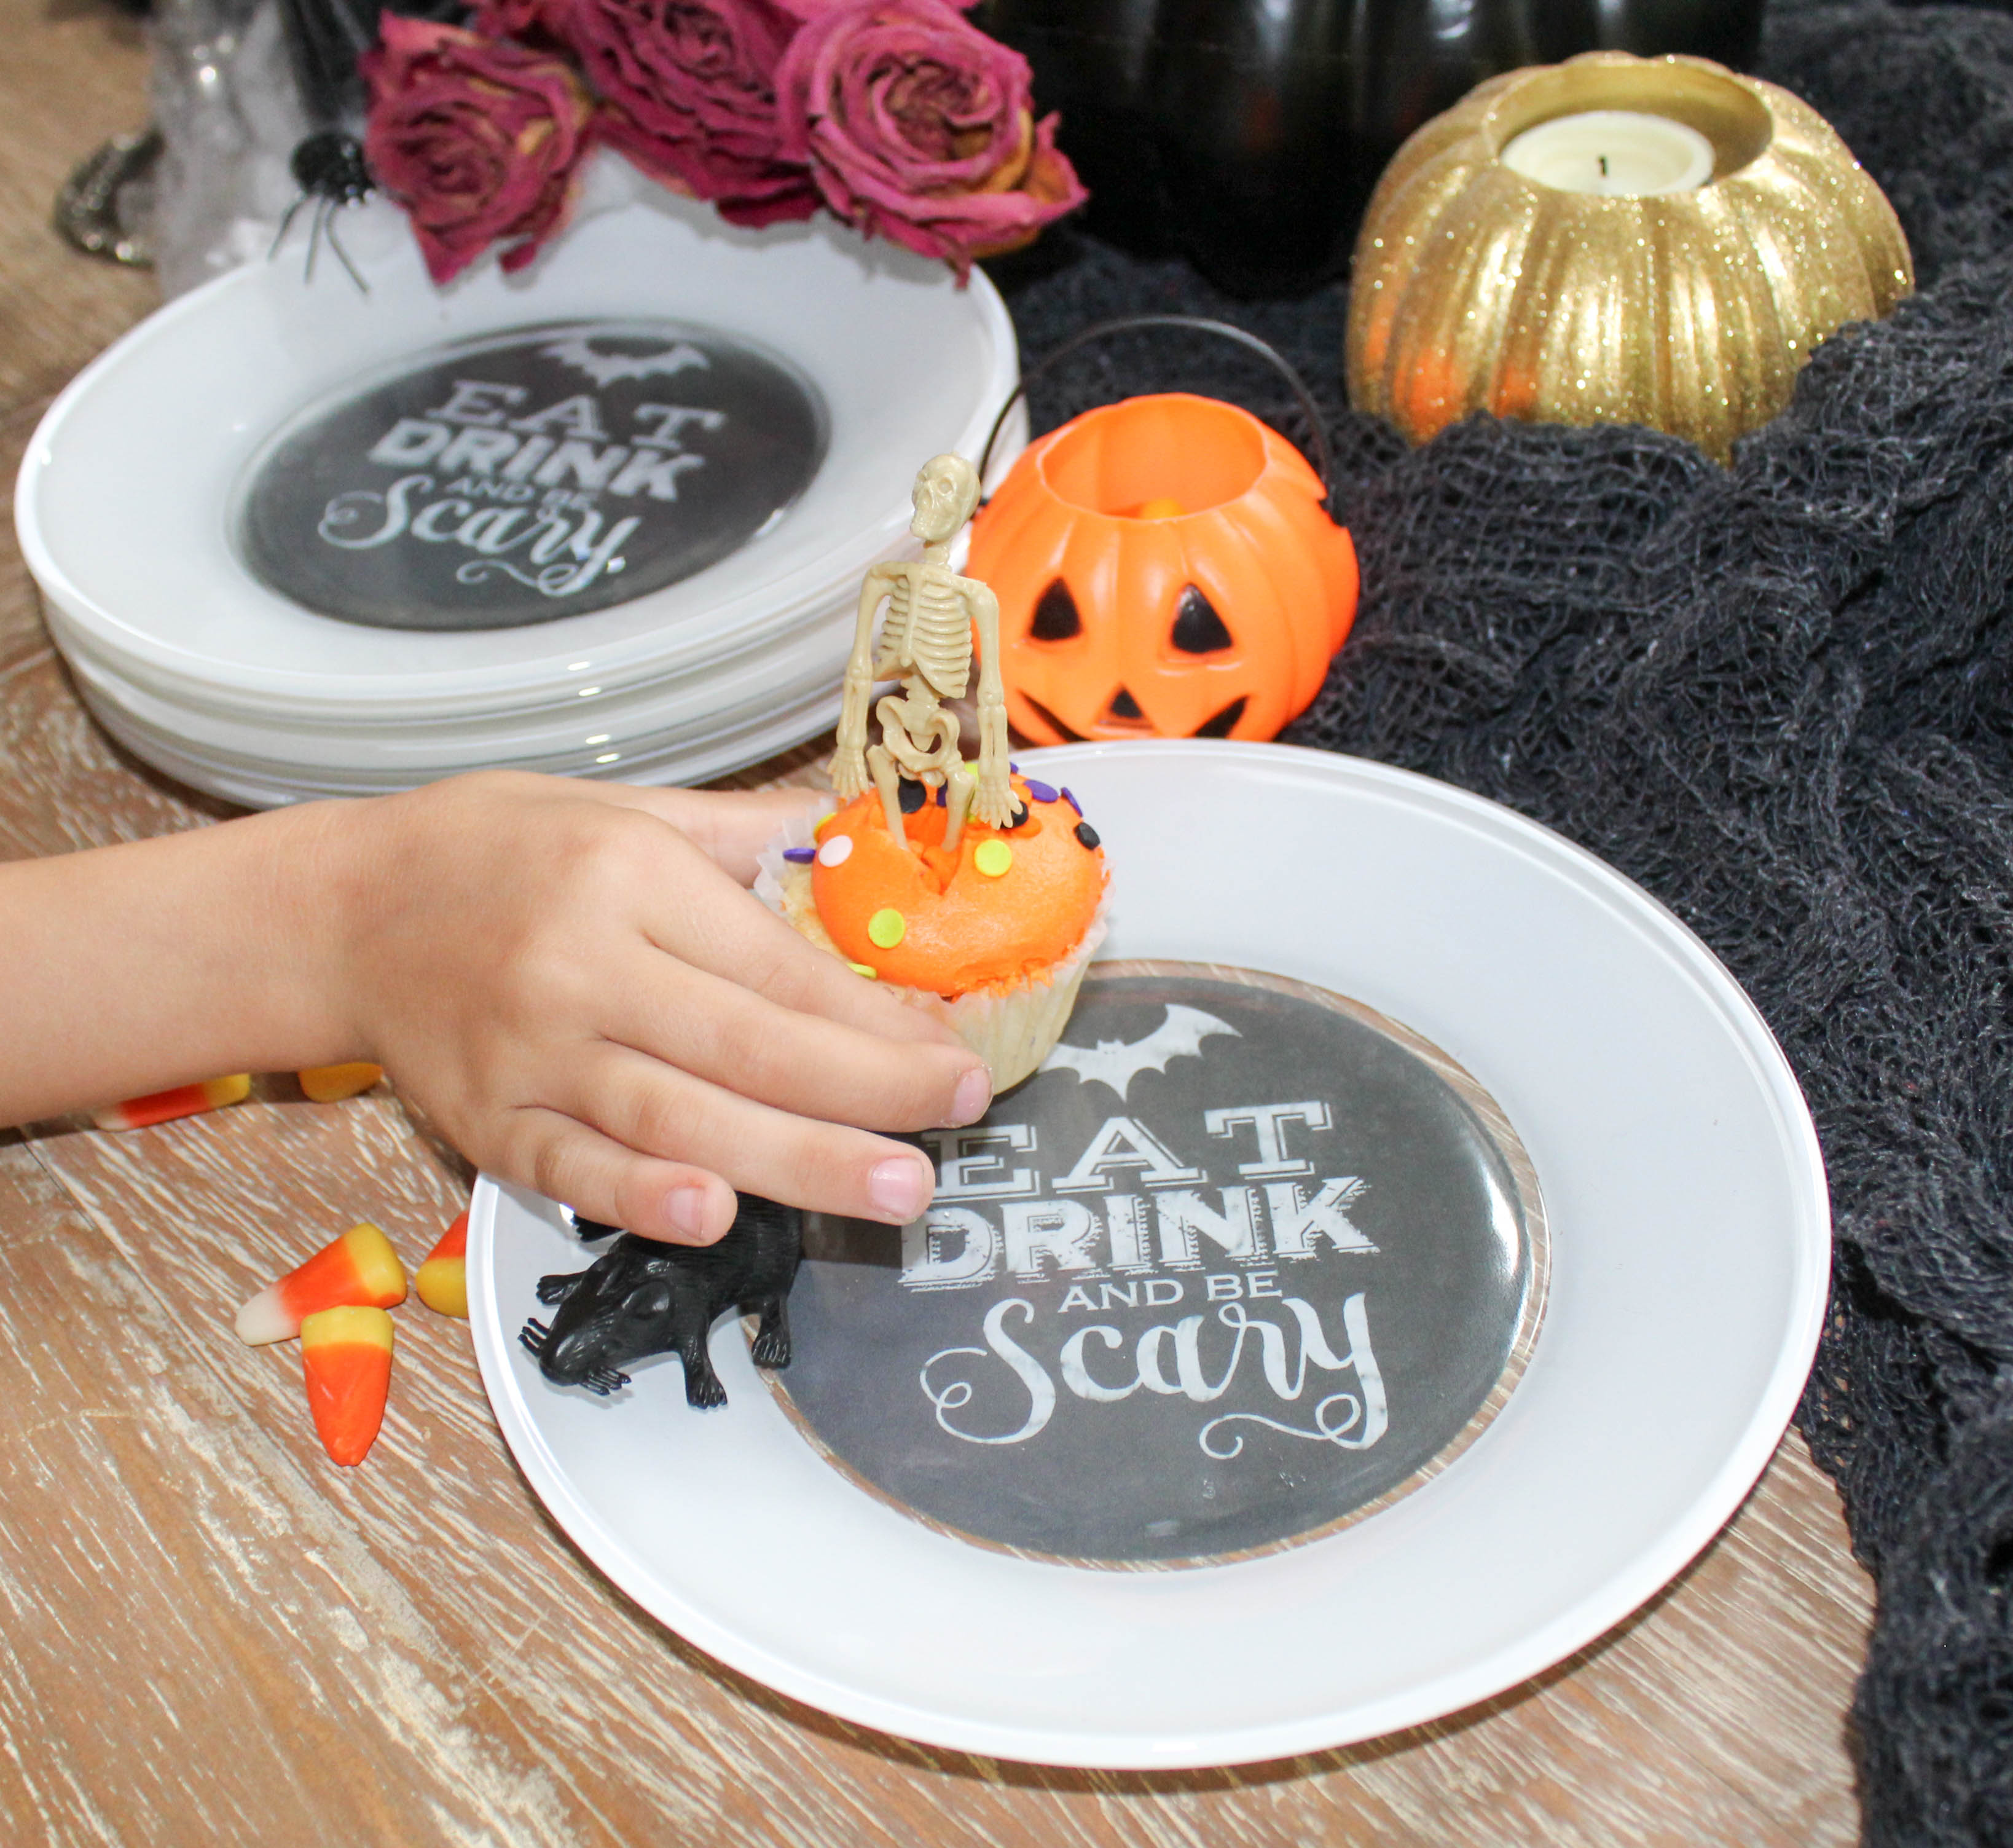 design-your-own-plate-make-custom-plate-halloween-dishes-19